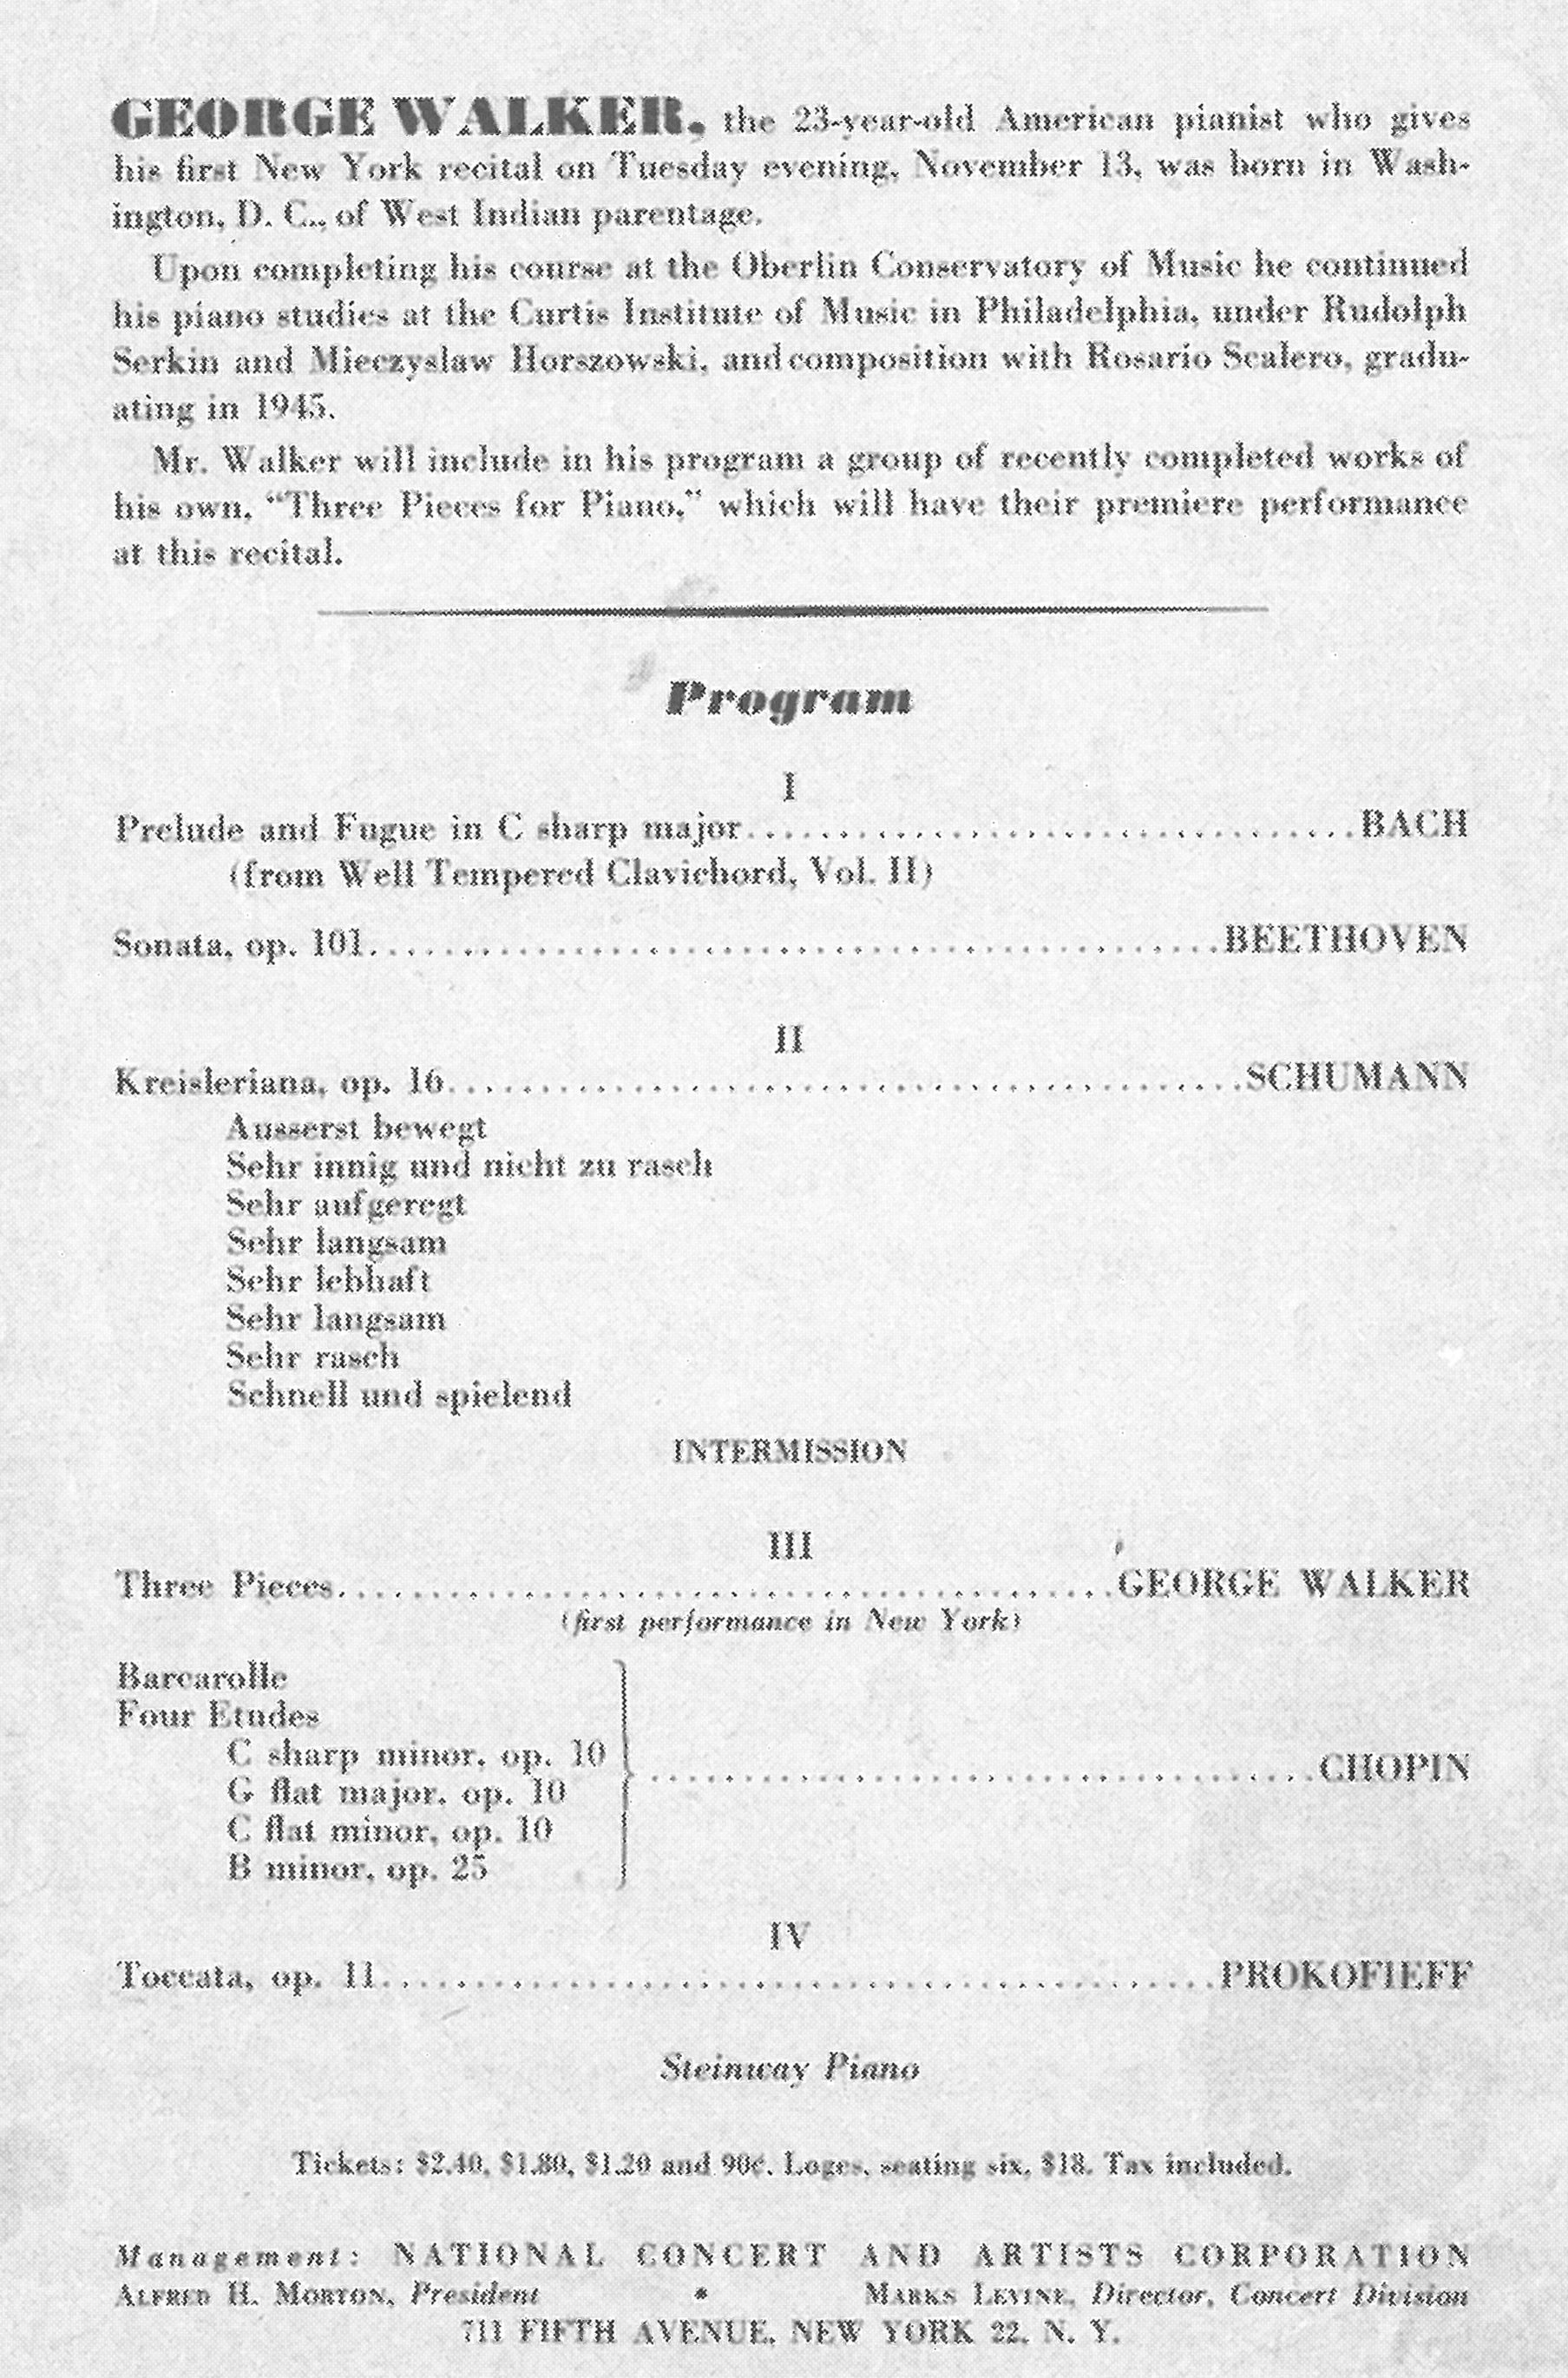 The program for George Walker's debut piano recital at New York's Town Hall: J.S. Bach's Prelude and Fugue in C-sharp minor from WTC Bk II; Beethoven's Sonata opus 101; Robert Schumann's Kreisleriana; (intermission); three pieces by Walker (receiving their world premiere performances); Chopin's Barcarolle plus four etudes (C-sharp minor, G-flat major, G-flat minor, and B minorf); and Prokofieff's Toccata, opus 11.